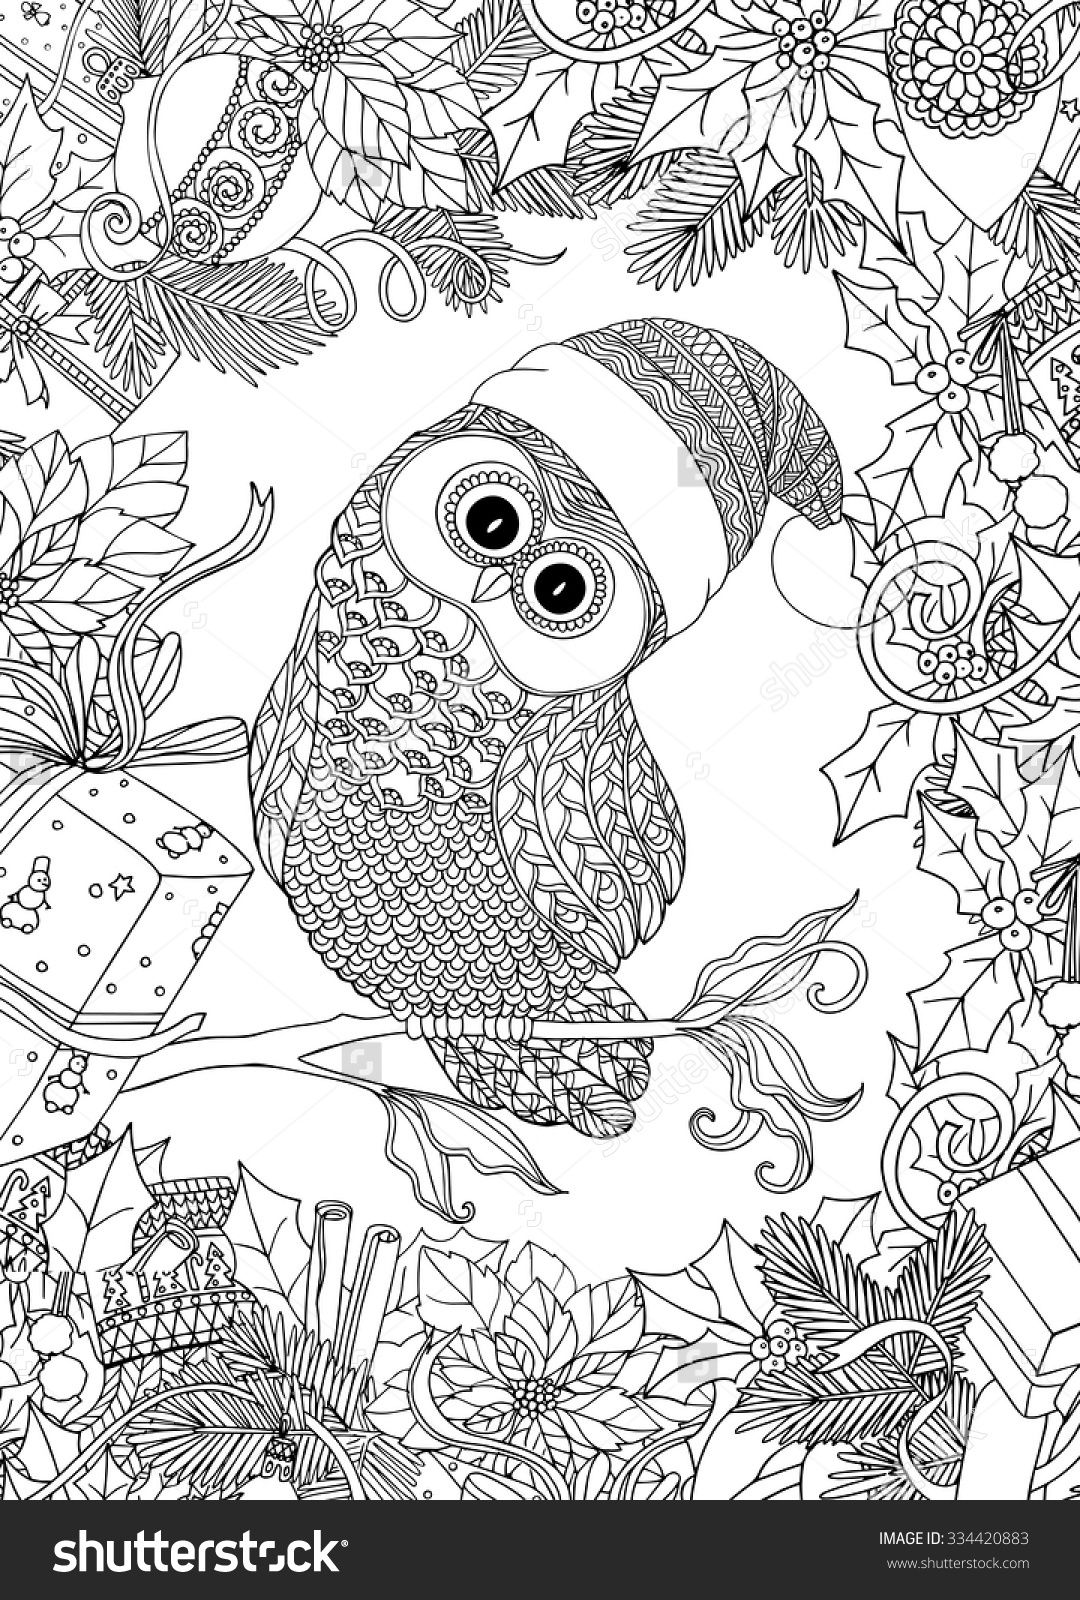 - Coloring Book For Adult And Older Children. Coloring Page With